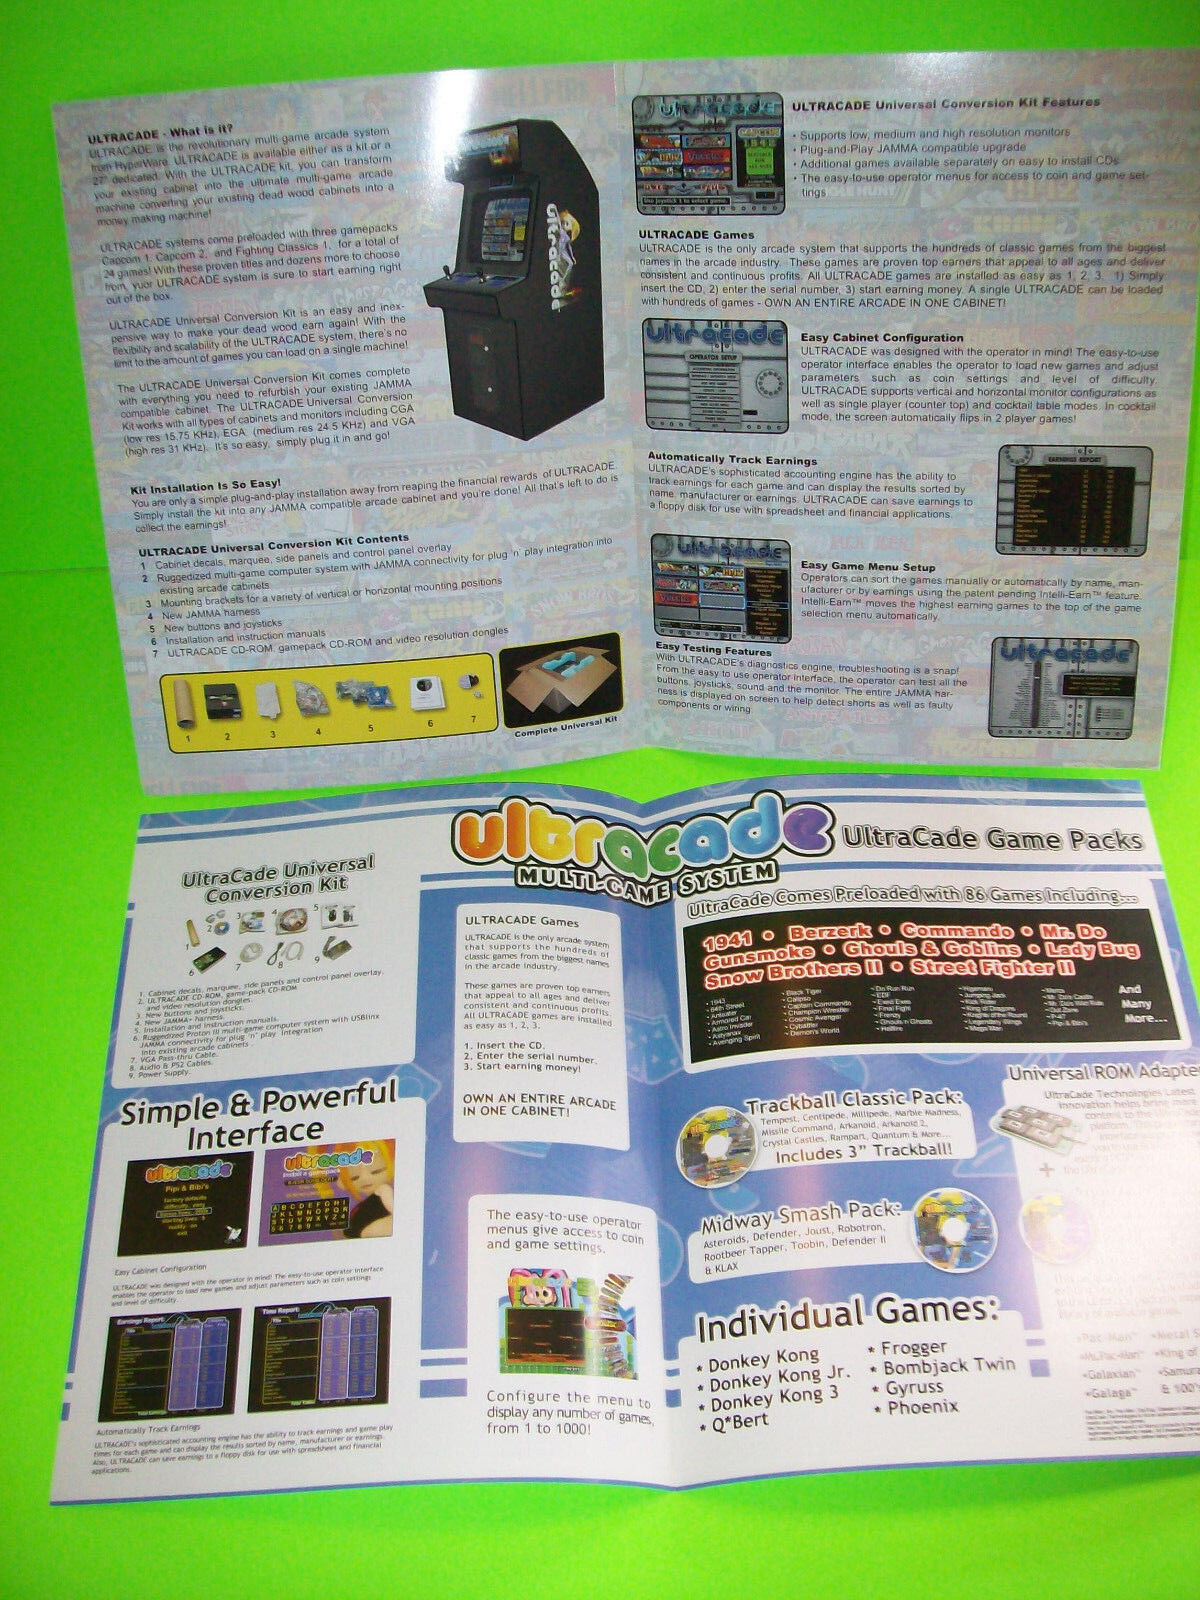 Ultracade Technologies Original Multi Game System Video Arcade Game Sales Flyers